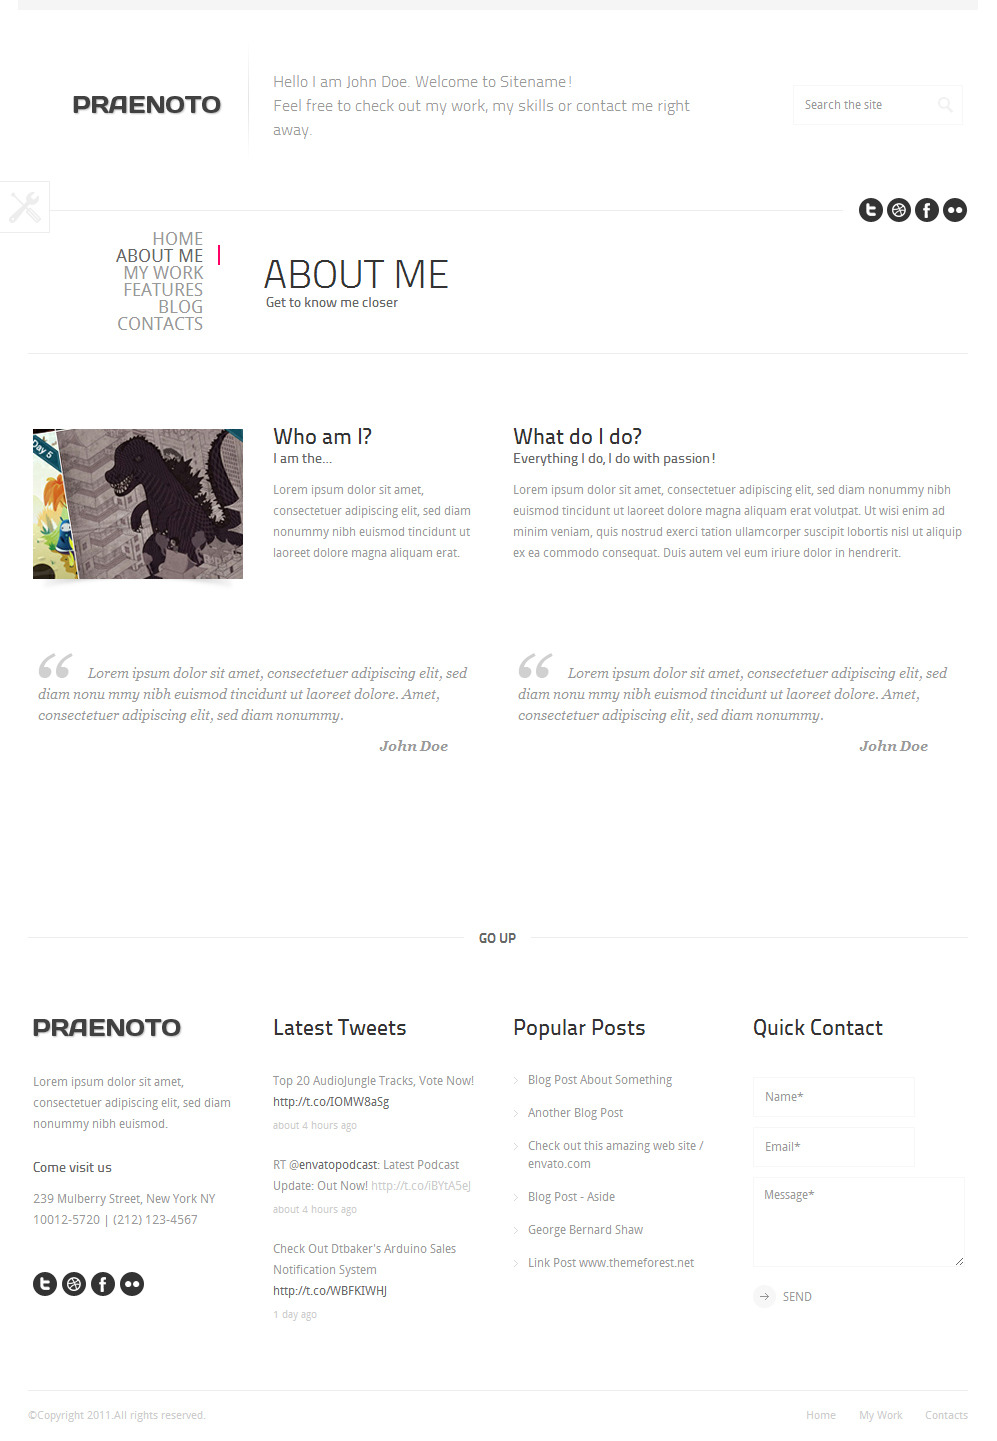 Praenoto - Clean & Minimalist WordPress Theme - Screenshot 3. About Me page.